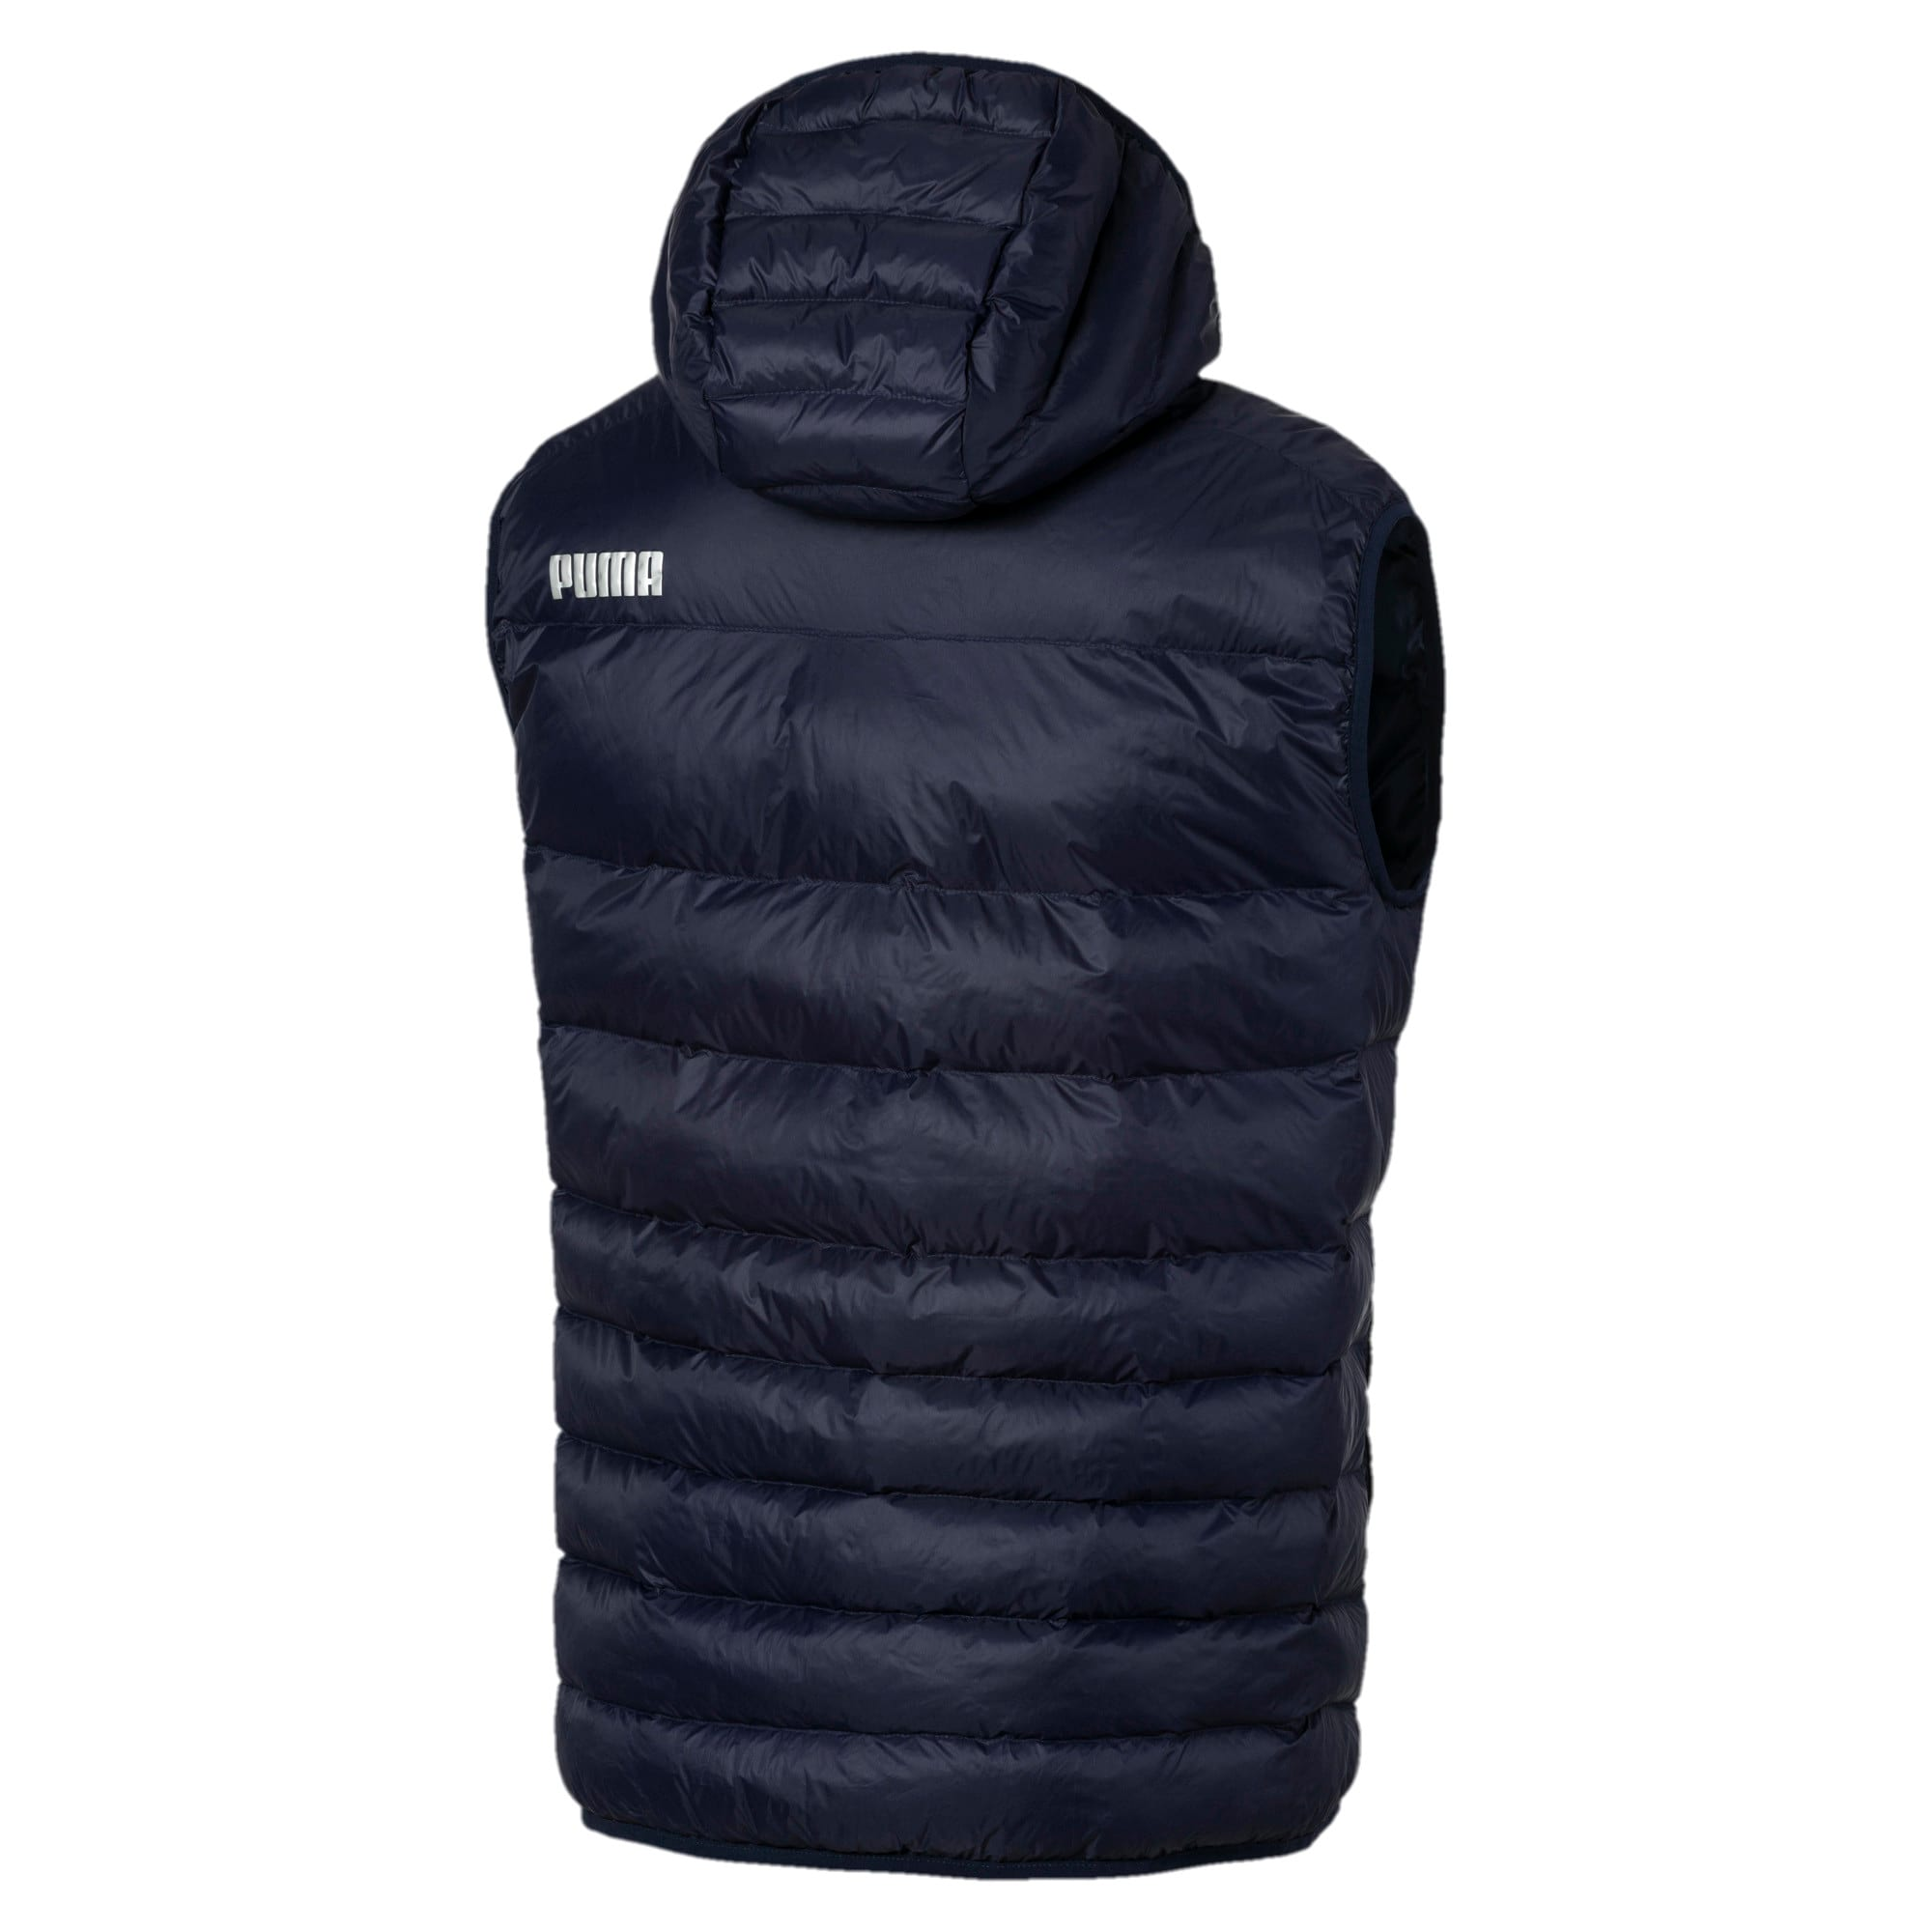 Thumbnail 5 of Ultralight Sleeveless Hooded Men's Vest, Peacoat, medium